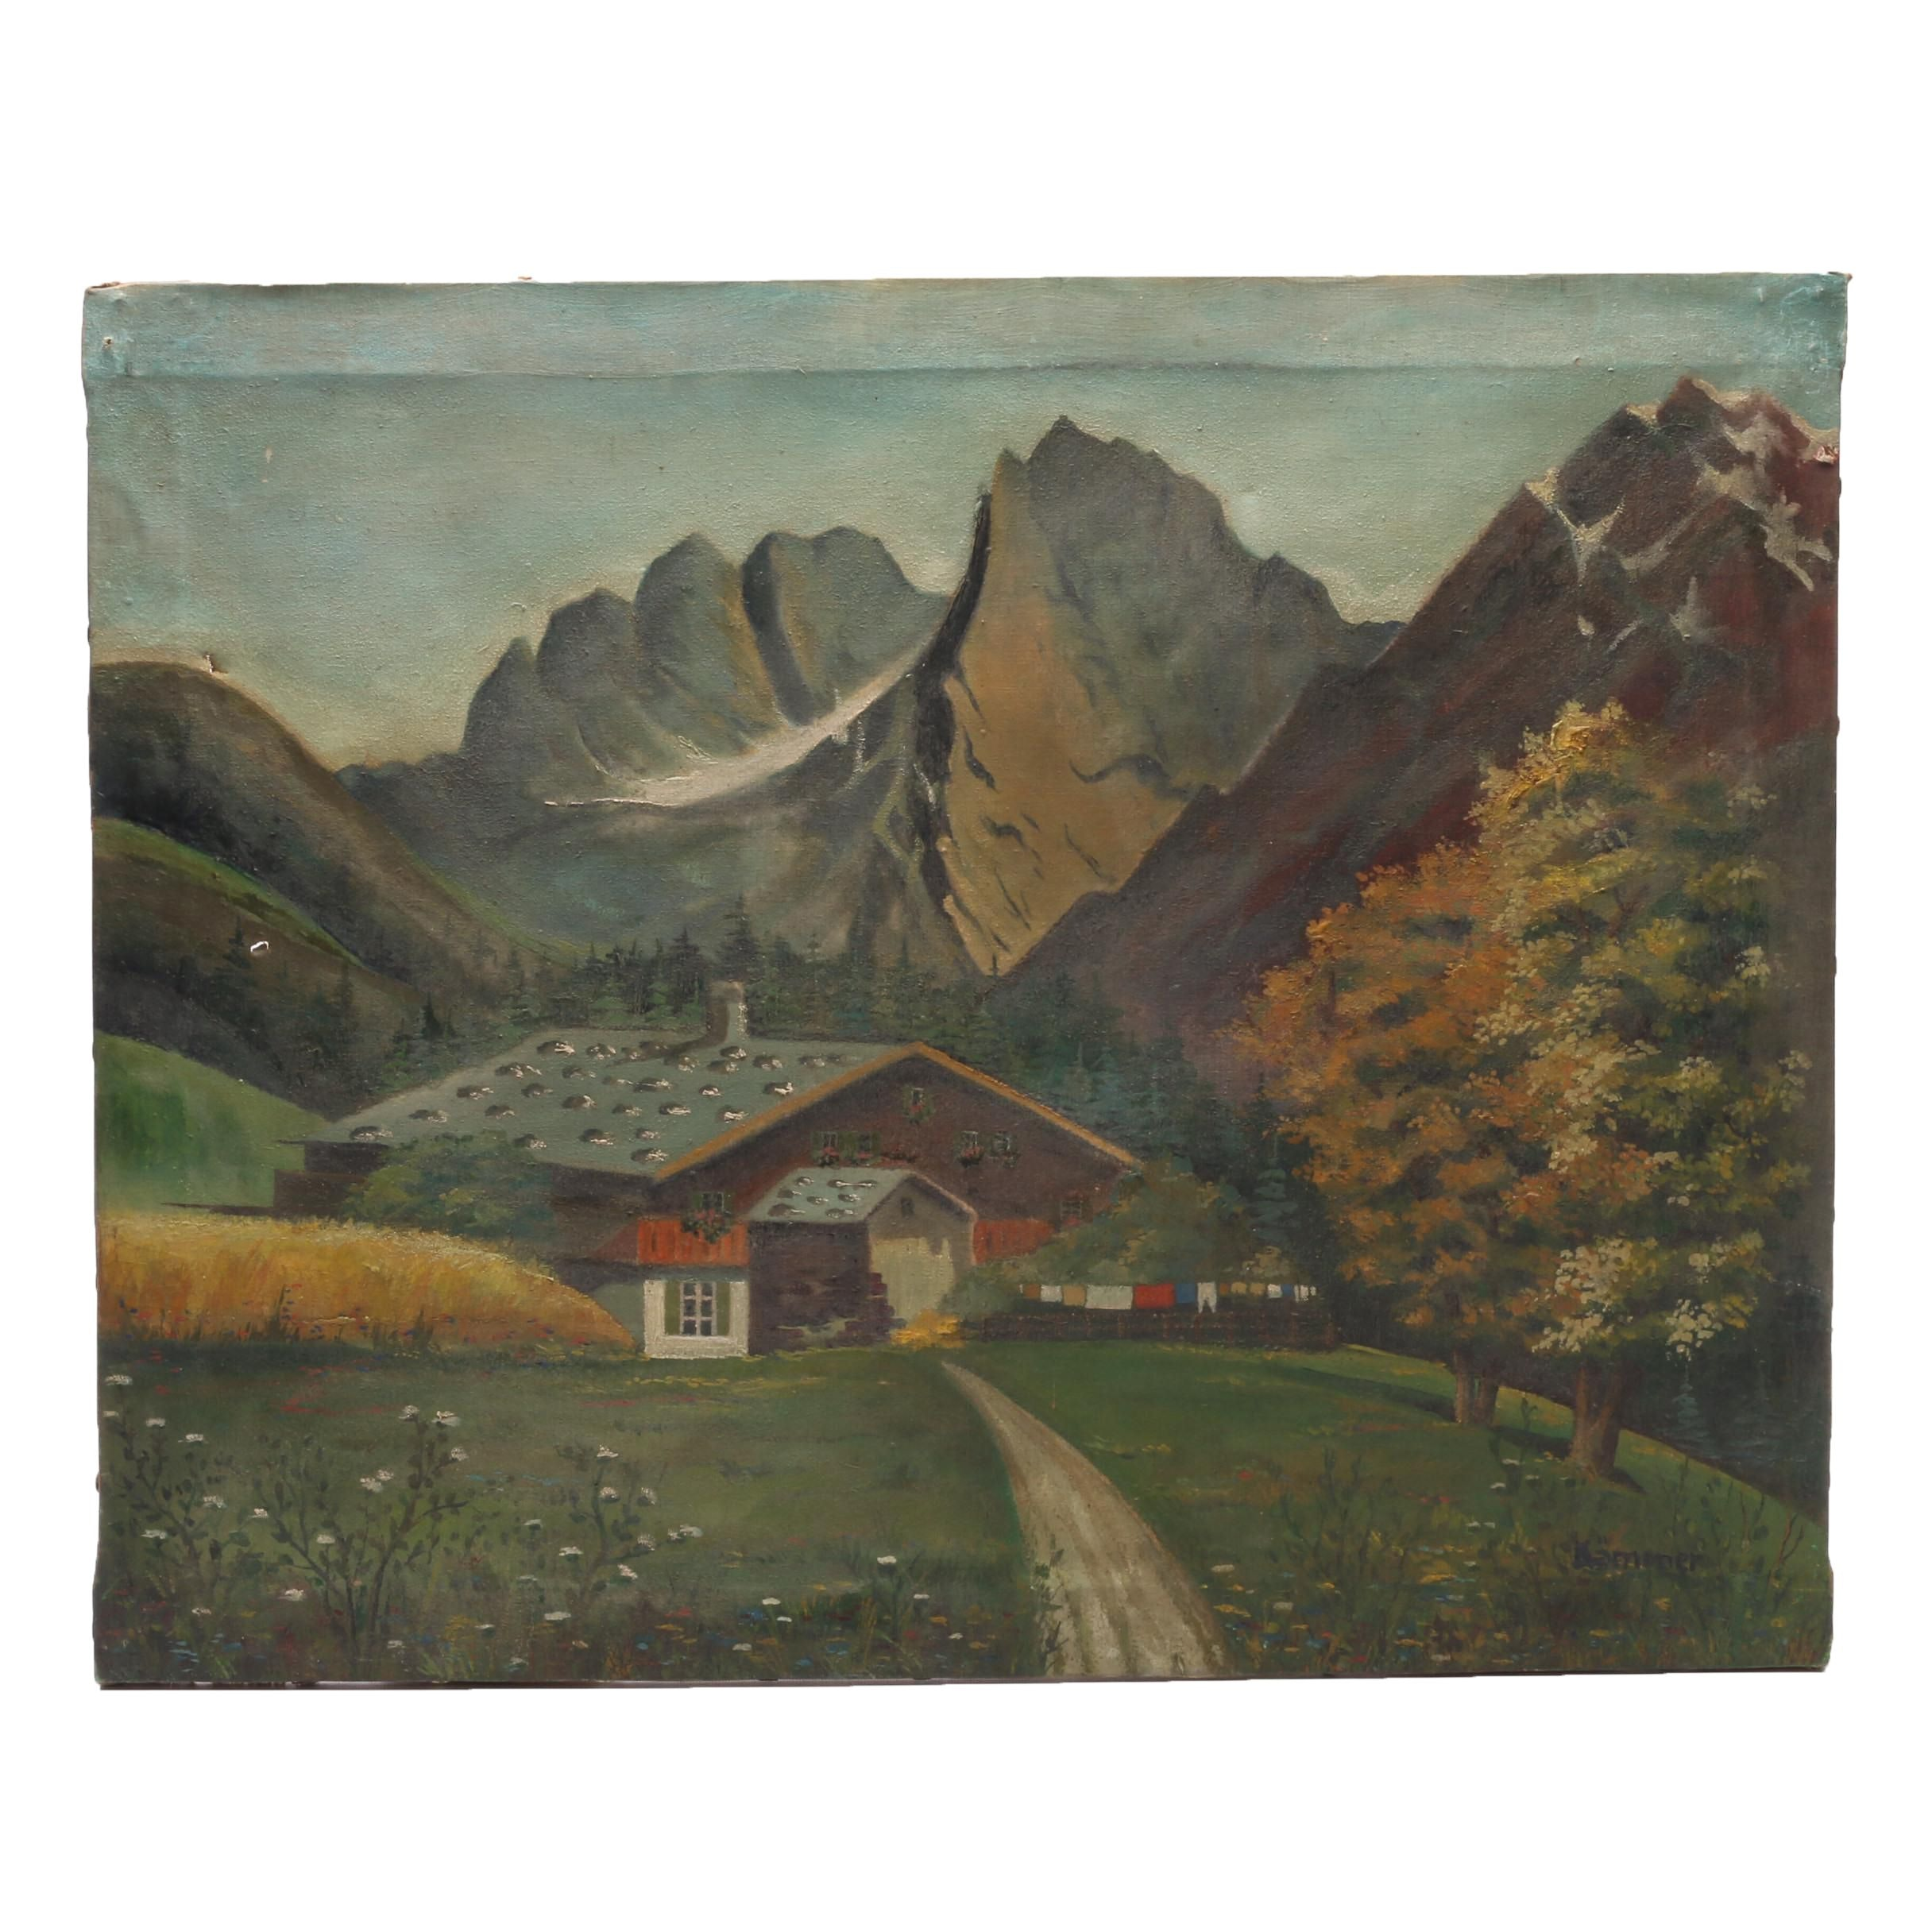 Kämmer Oil Painting of Alpine Landscape with Chalet